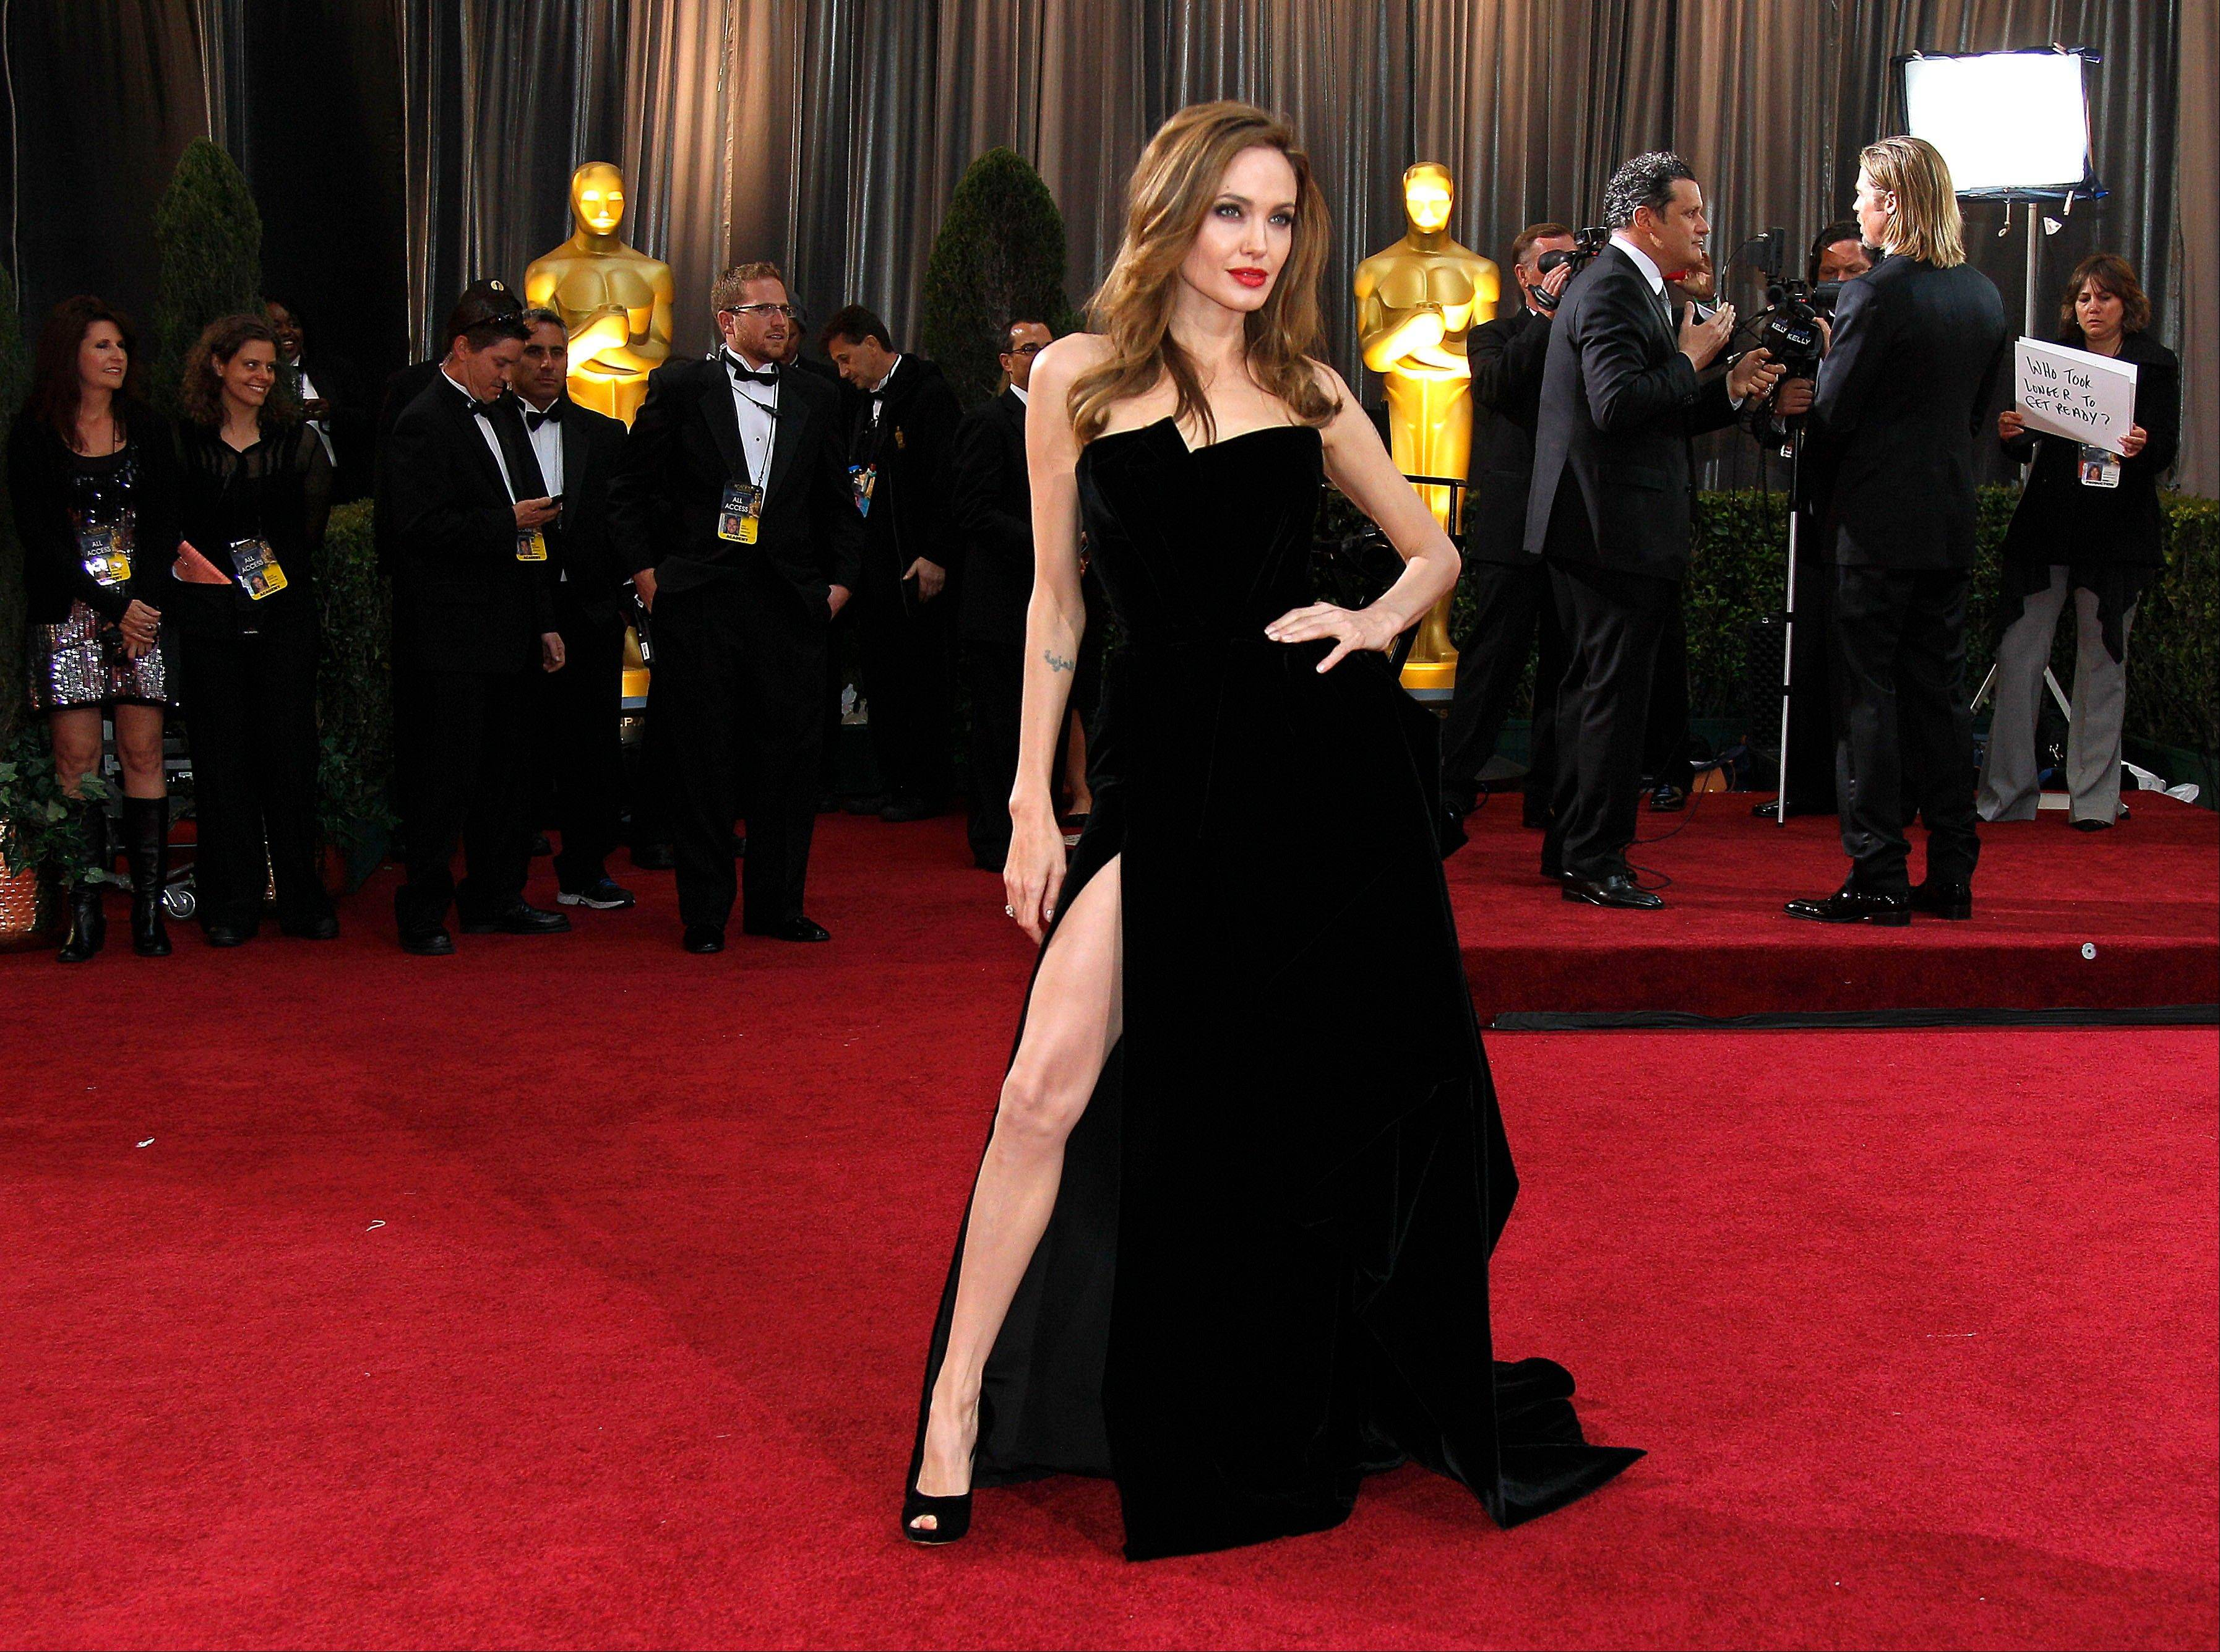 Actress Angelina Jolie shows some leg in her Atelier Versace dress.